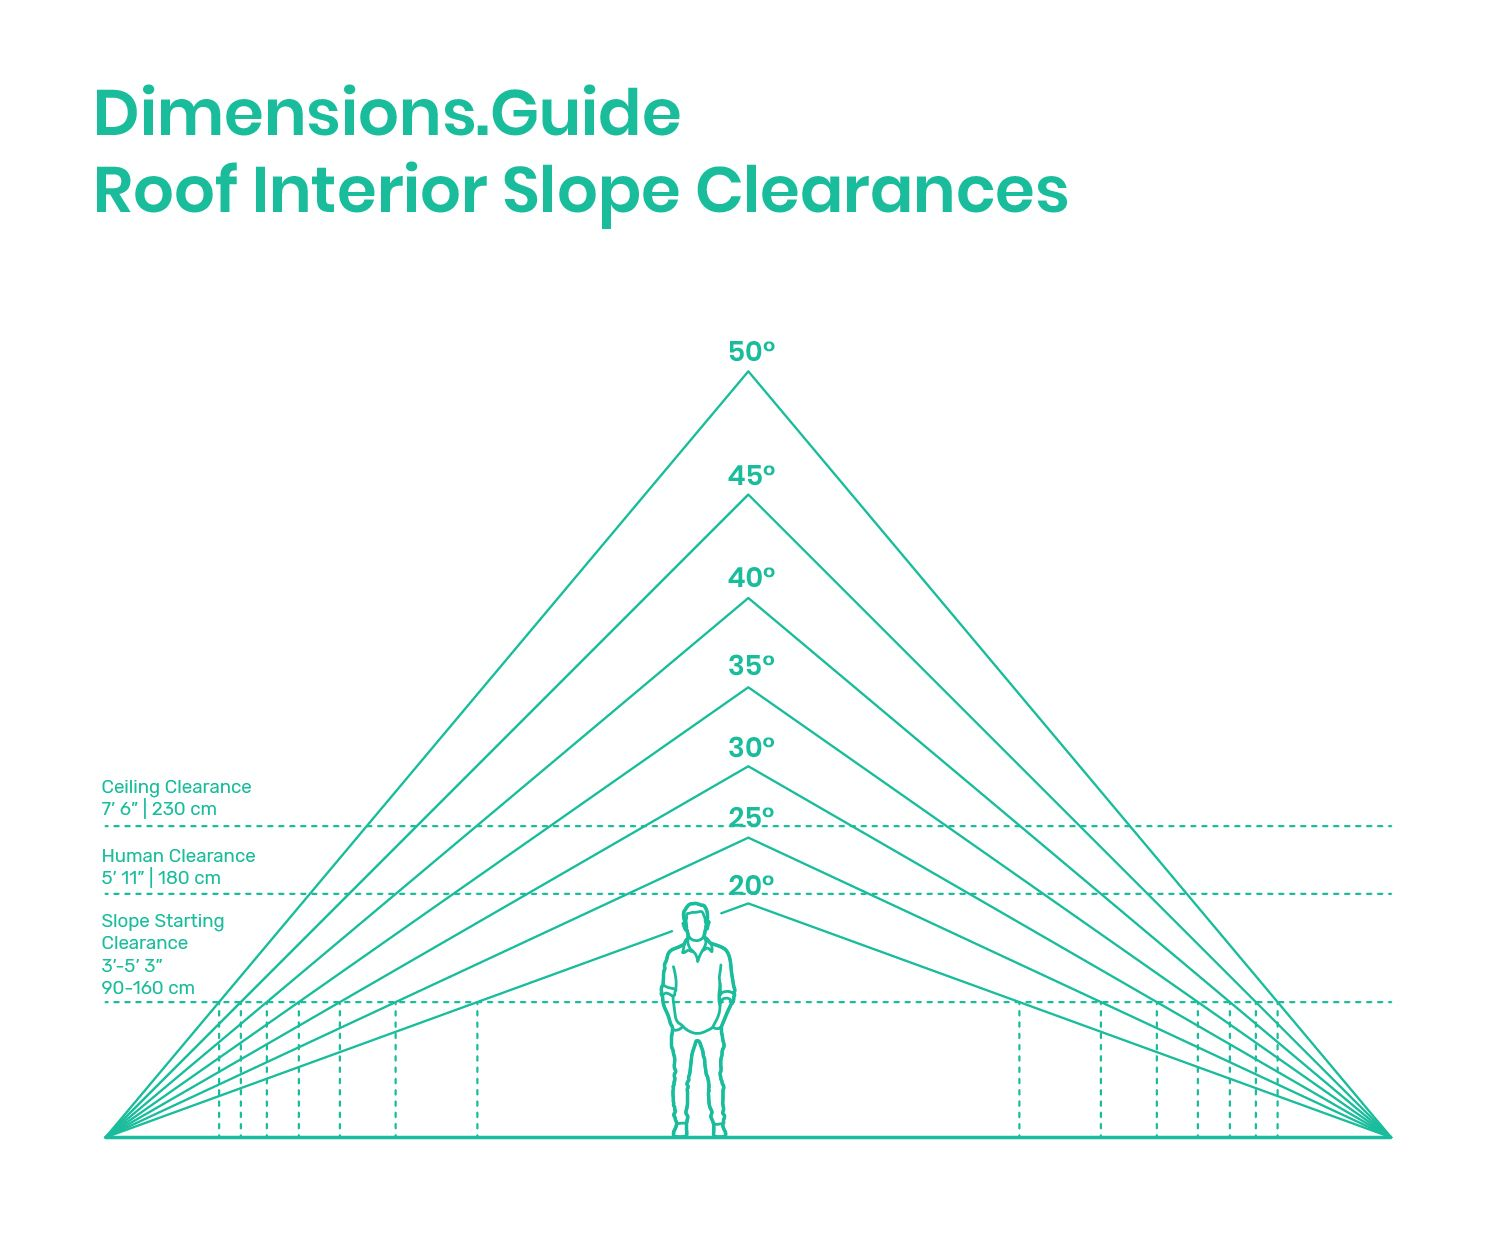 Roof Interior Slope Clearances Interior Design And Technology Roof Fibreglass Roof